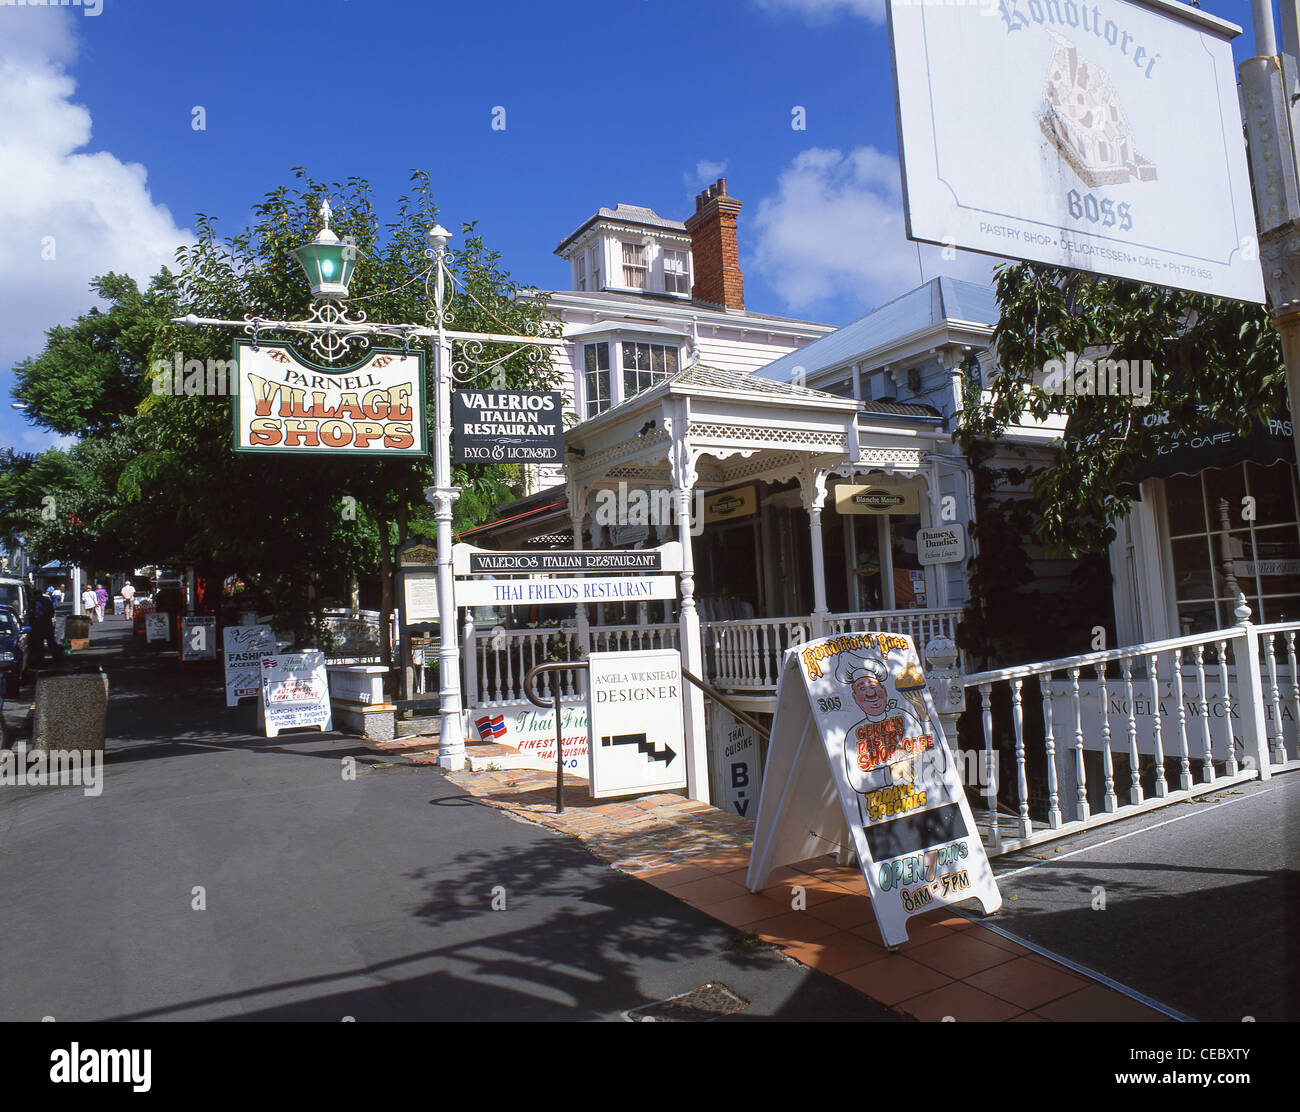 Parnell Village shops, Parnell Rise, Parnell, Auckland, Auckland Region, North Island, New Zealand - Stock Image